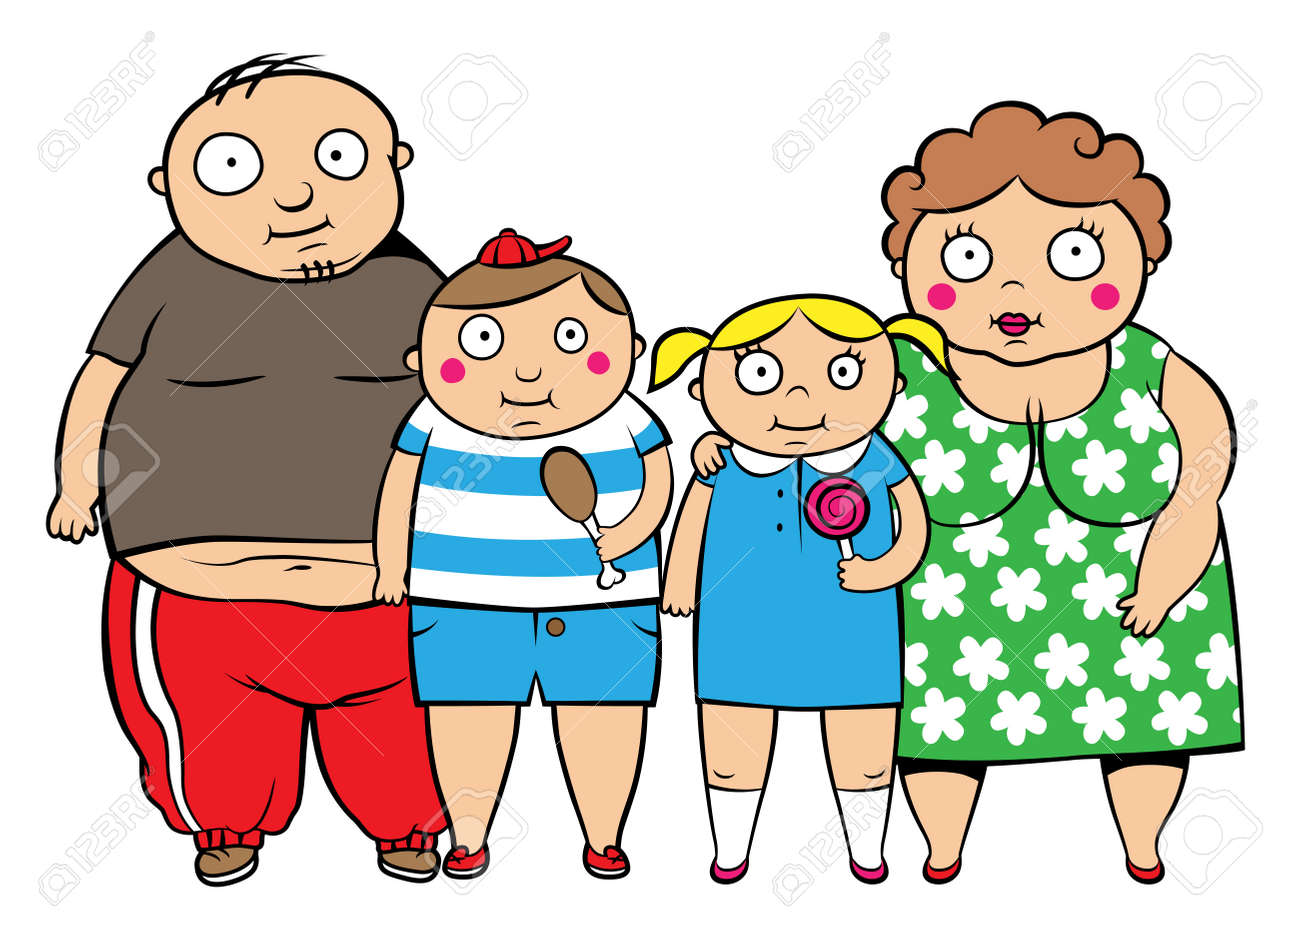 Cartoon vector illustration of fat overweight family, children with parents - 22313930